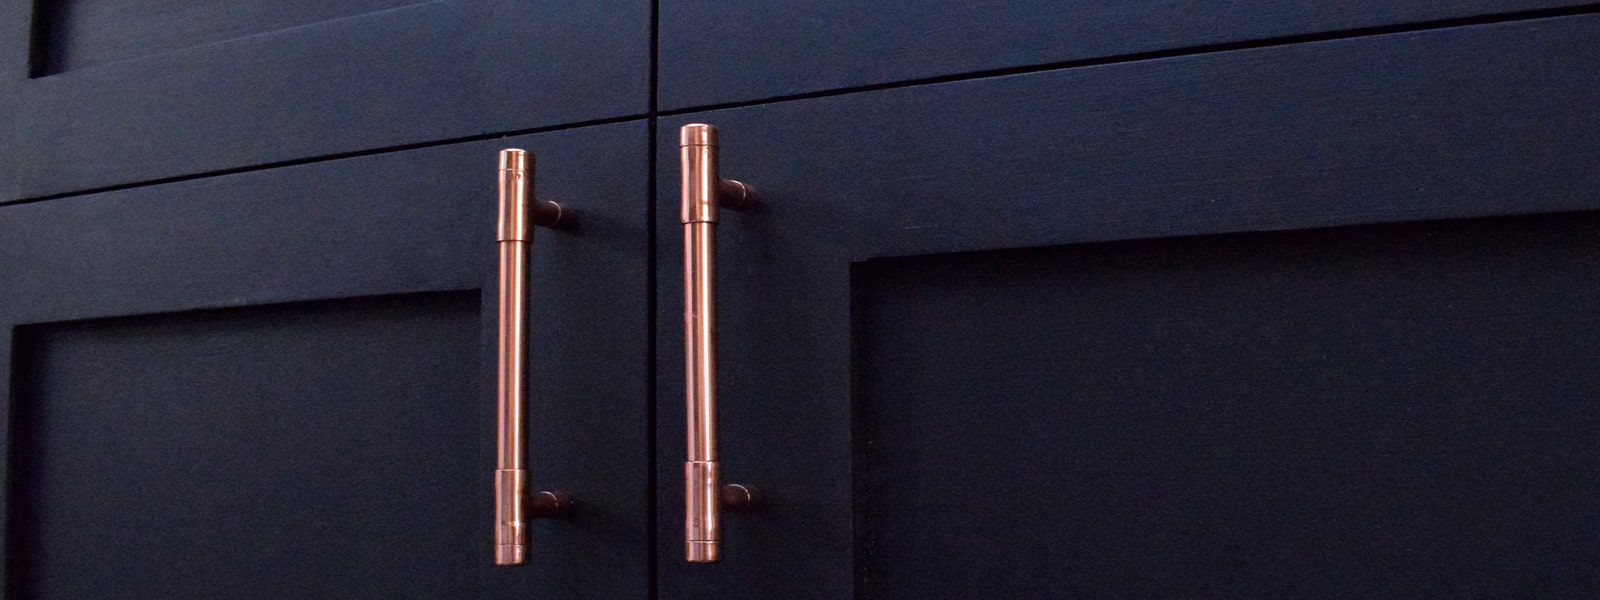 copper handles on cabinets